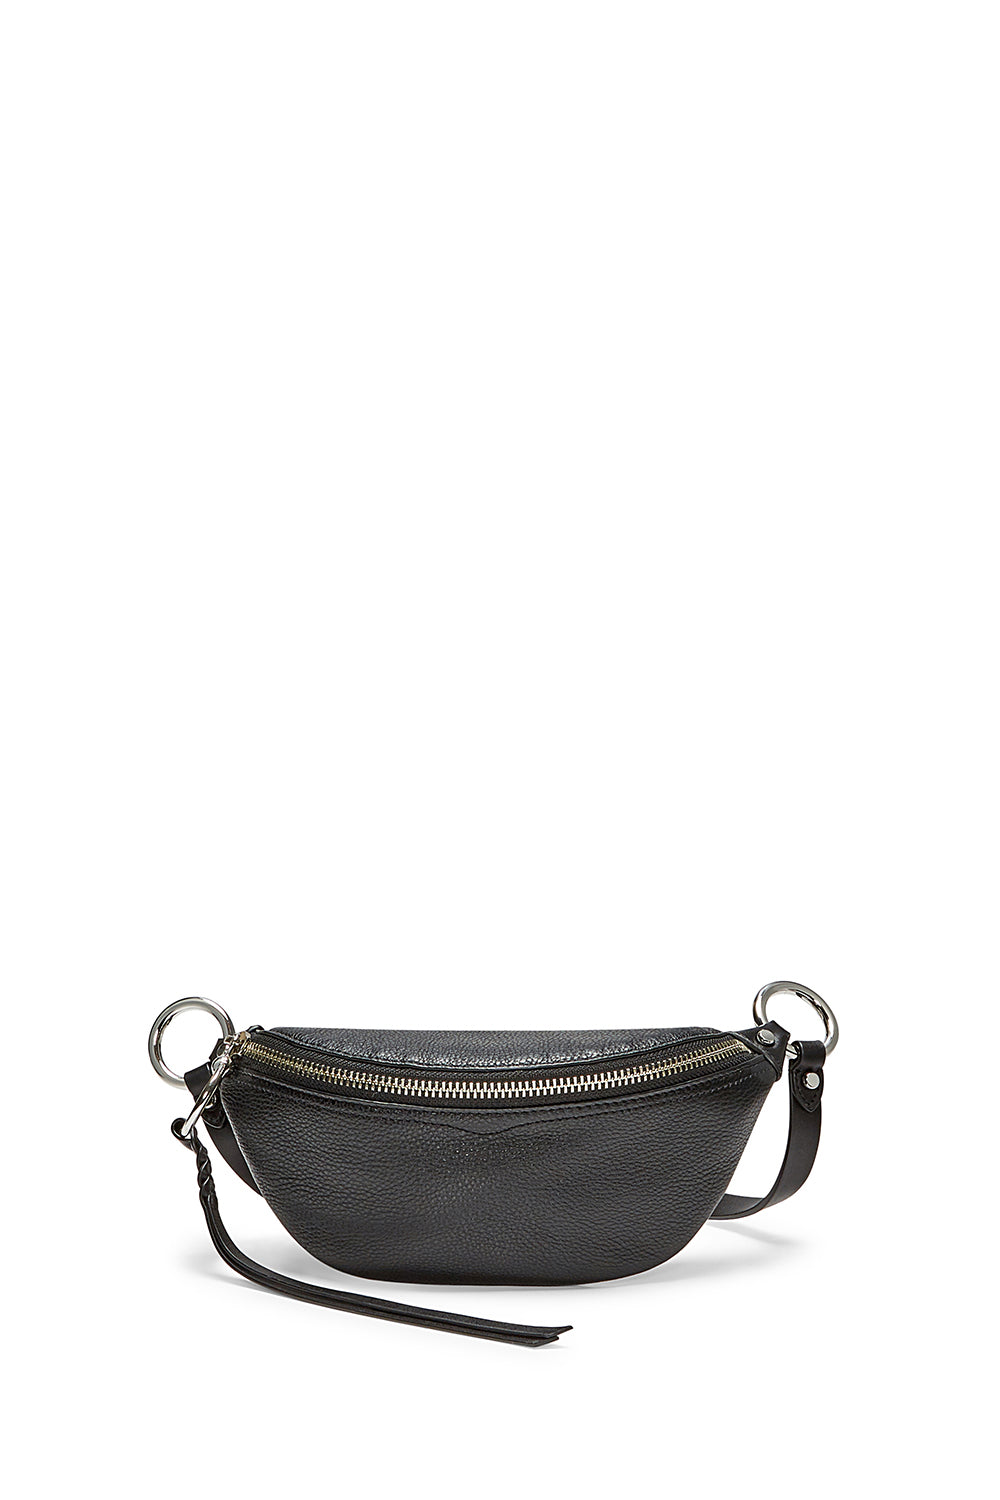 7ebe66aa20c7 Bree Mini Belt Bag – Rebecca Minkoff